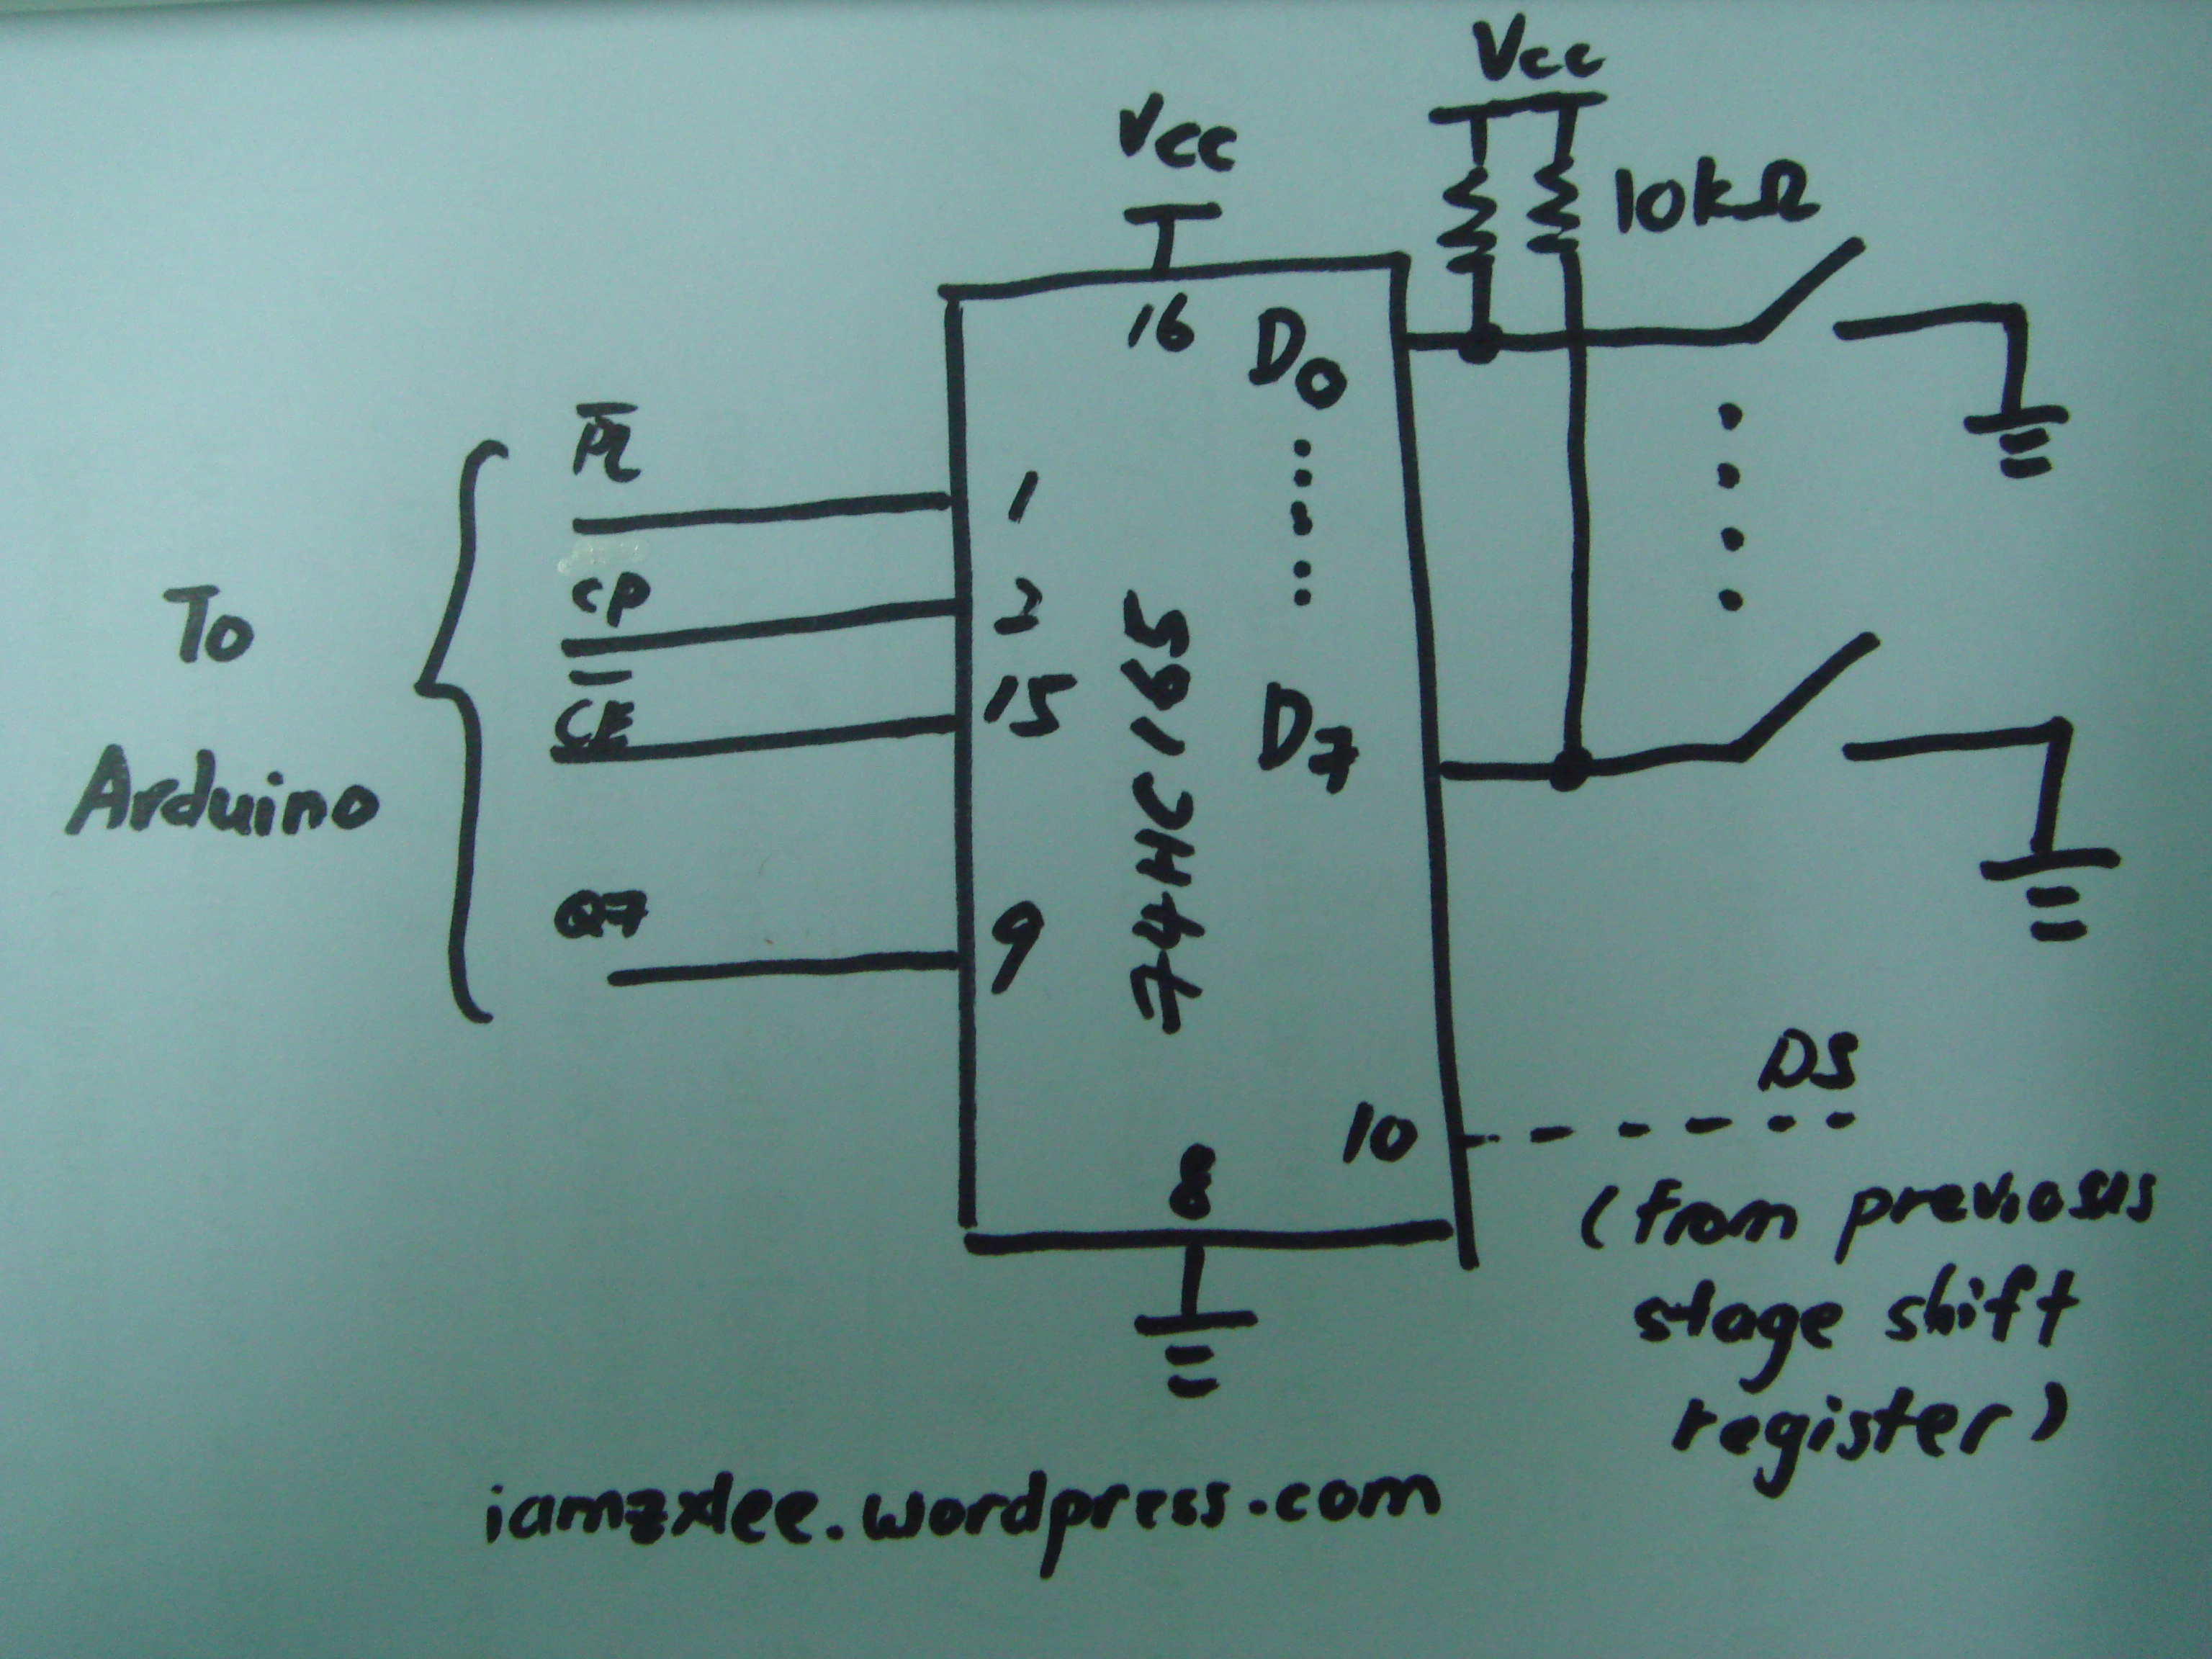 parallel in out shift register timing diagram parts of a pocket knife 74hc165 8 bit serial zx lee